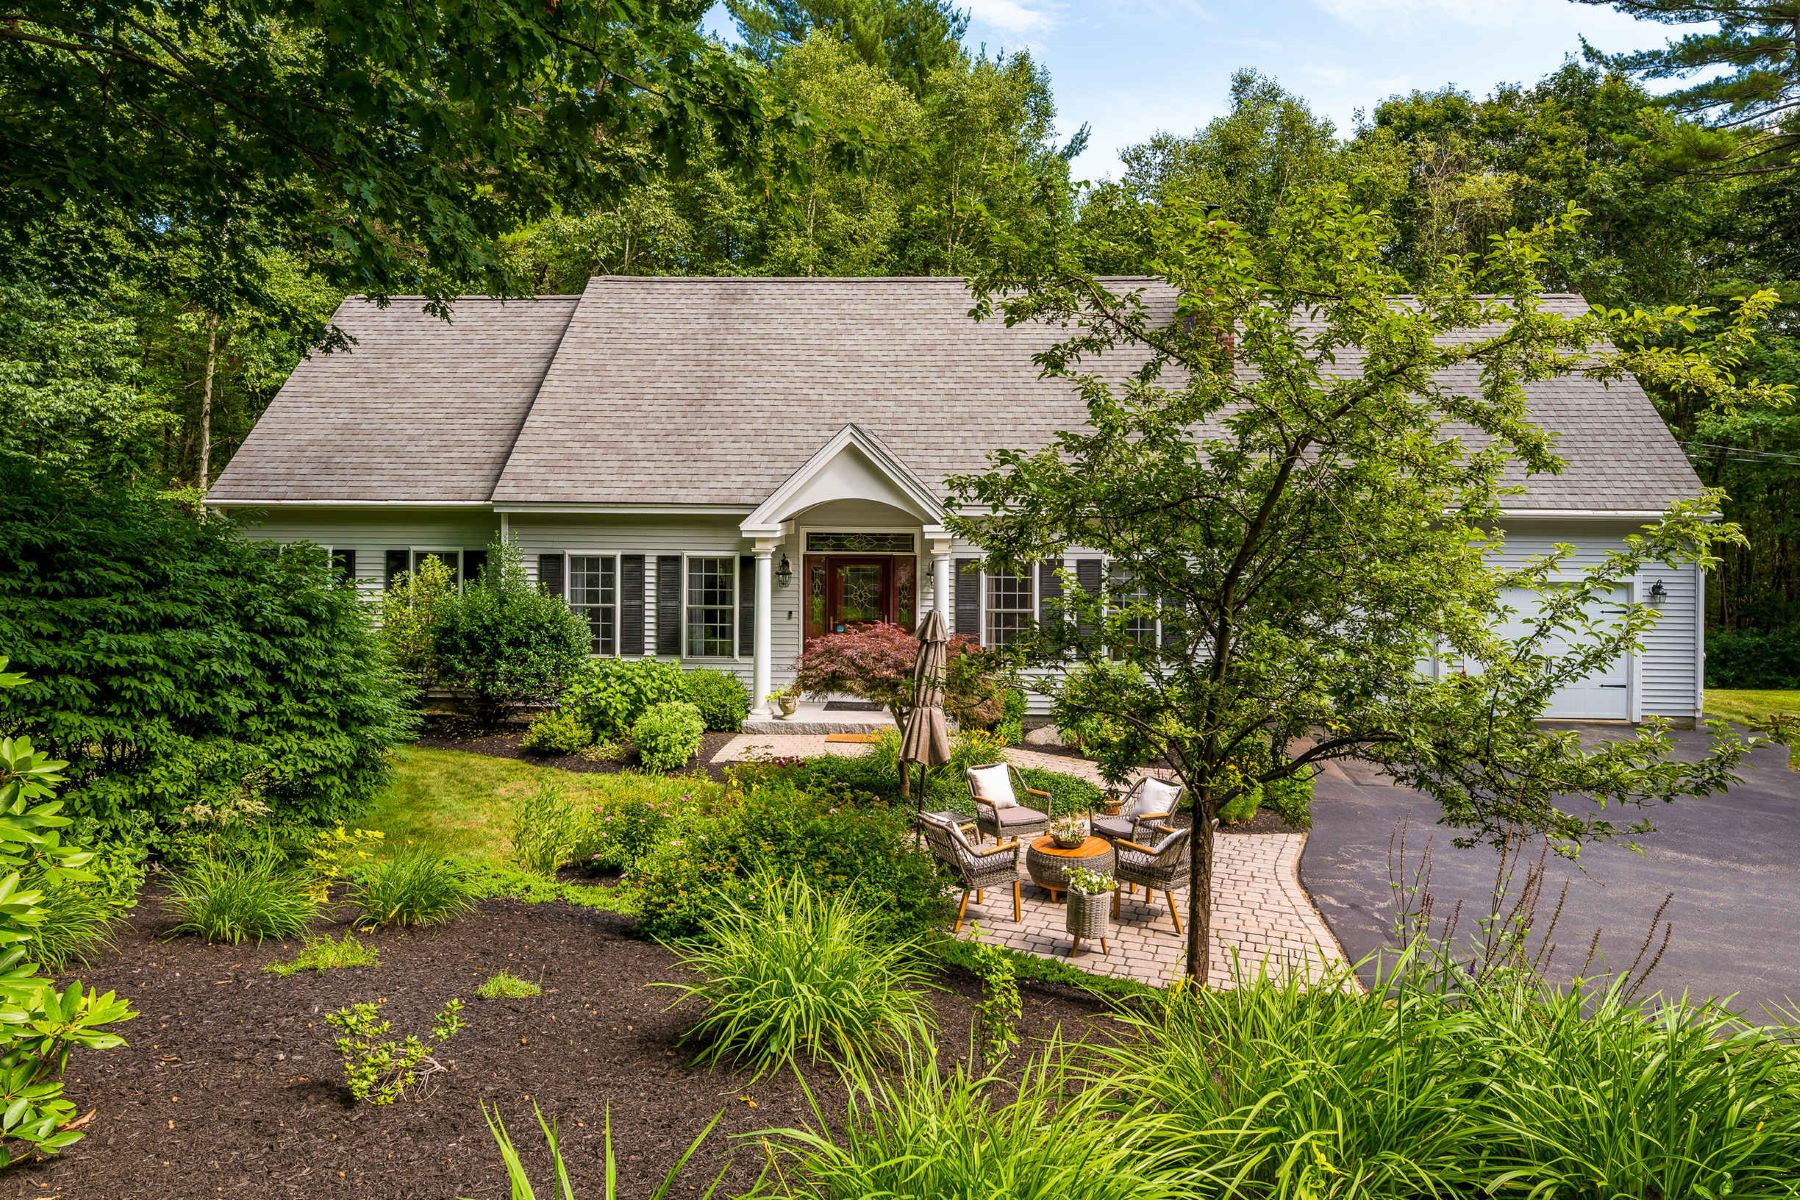 Single Family Homes for Sale at Meticulous Cape on Private Cul-de-sac in Kittery Point 14 Lynch Lane Kittery, Maine 03905 United States